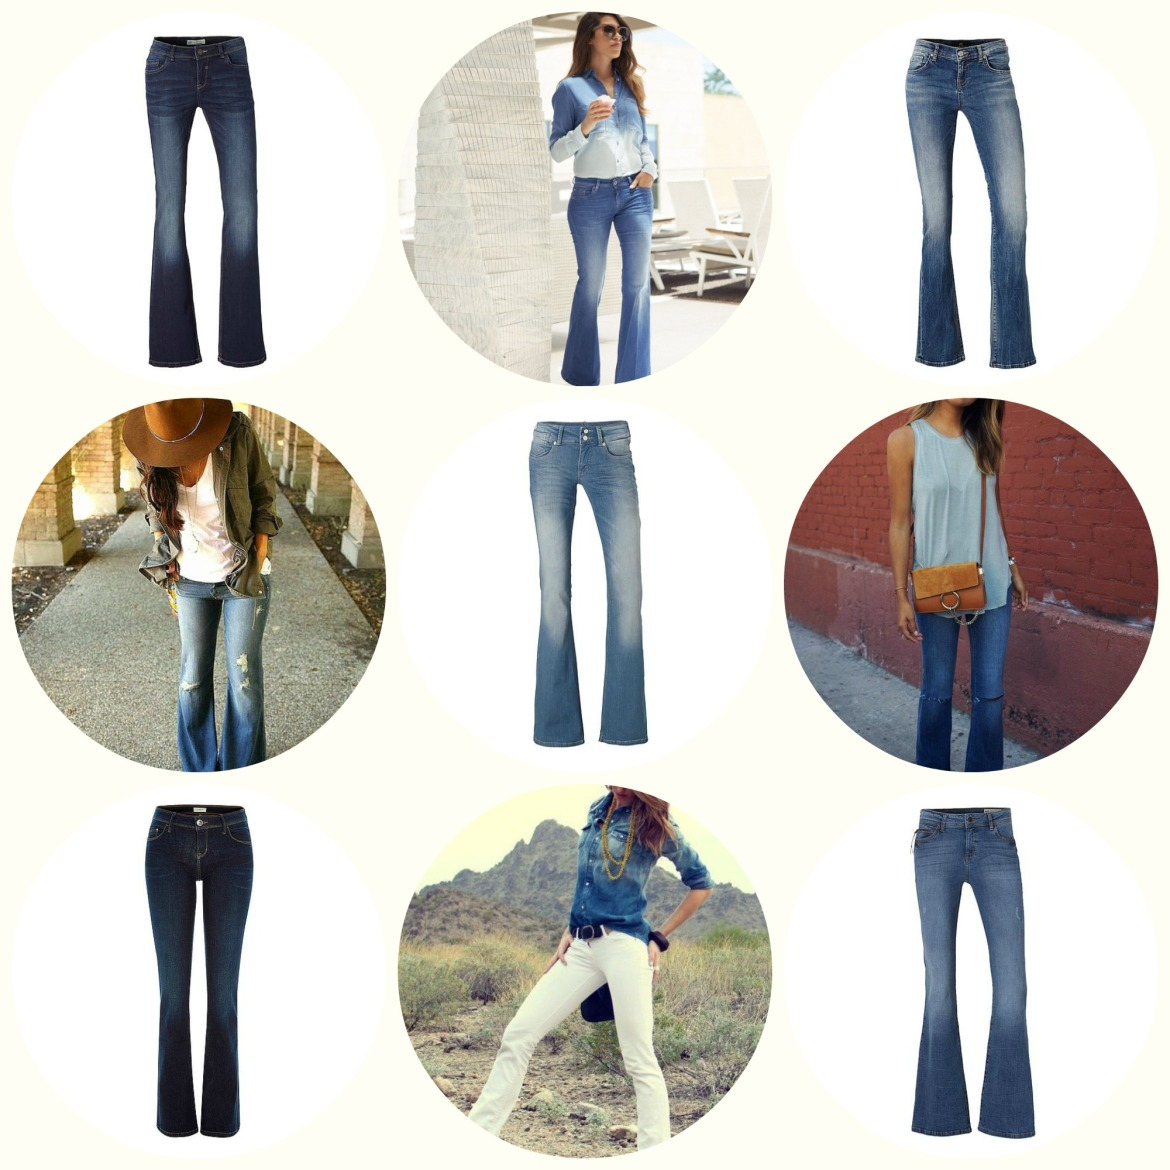 flared jeans pic